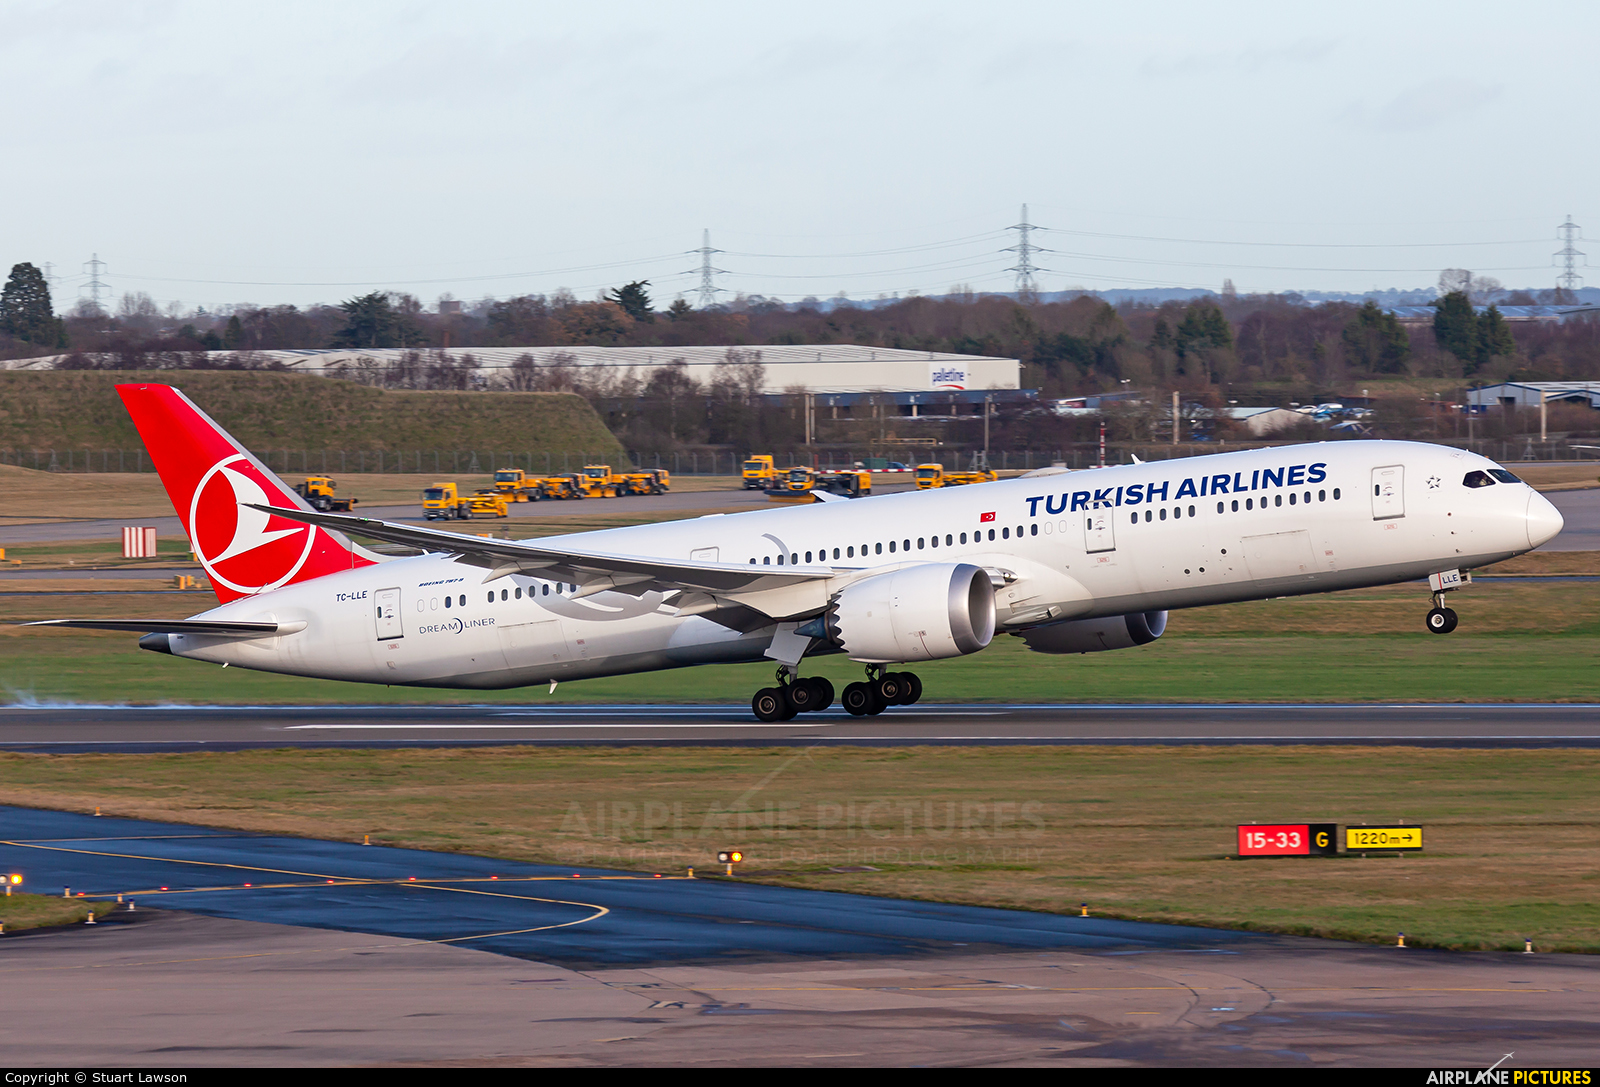 Turkish Airlines TC-LLE aircraft at Birmingham